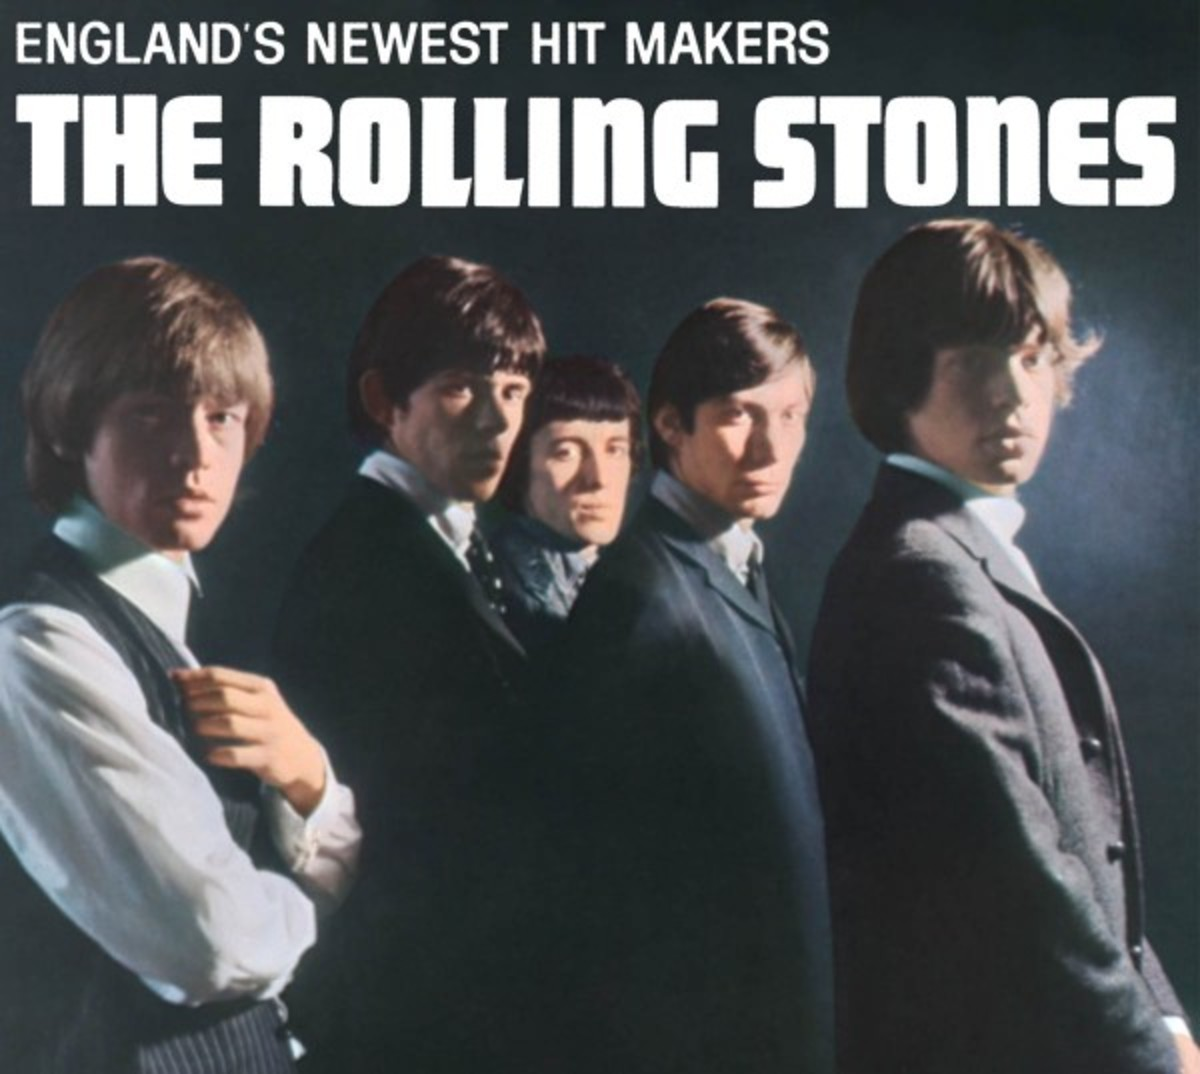 Rolling Stones 1964 Album Cover Photo